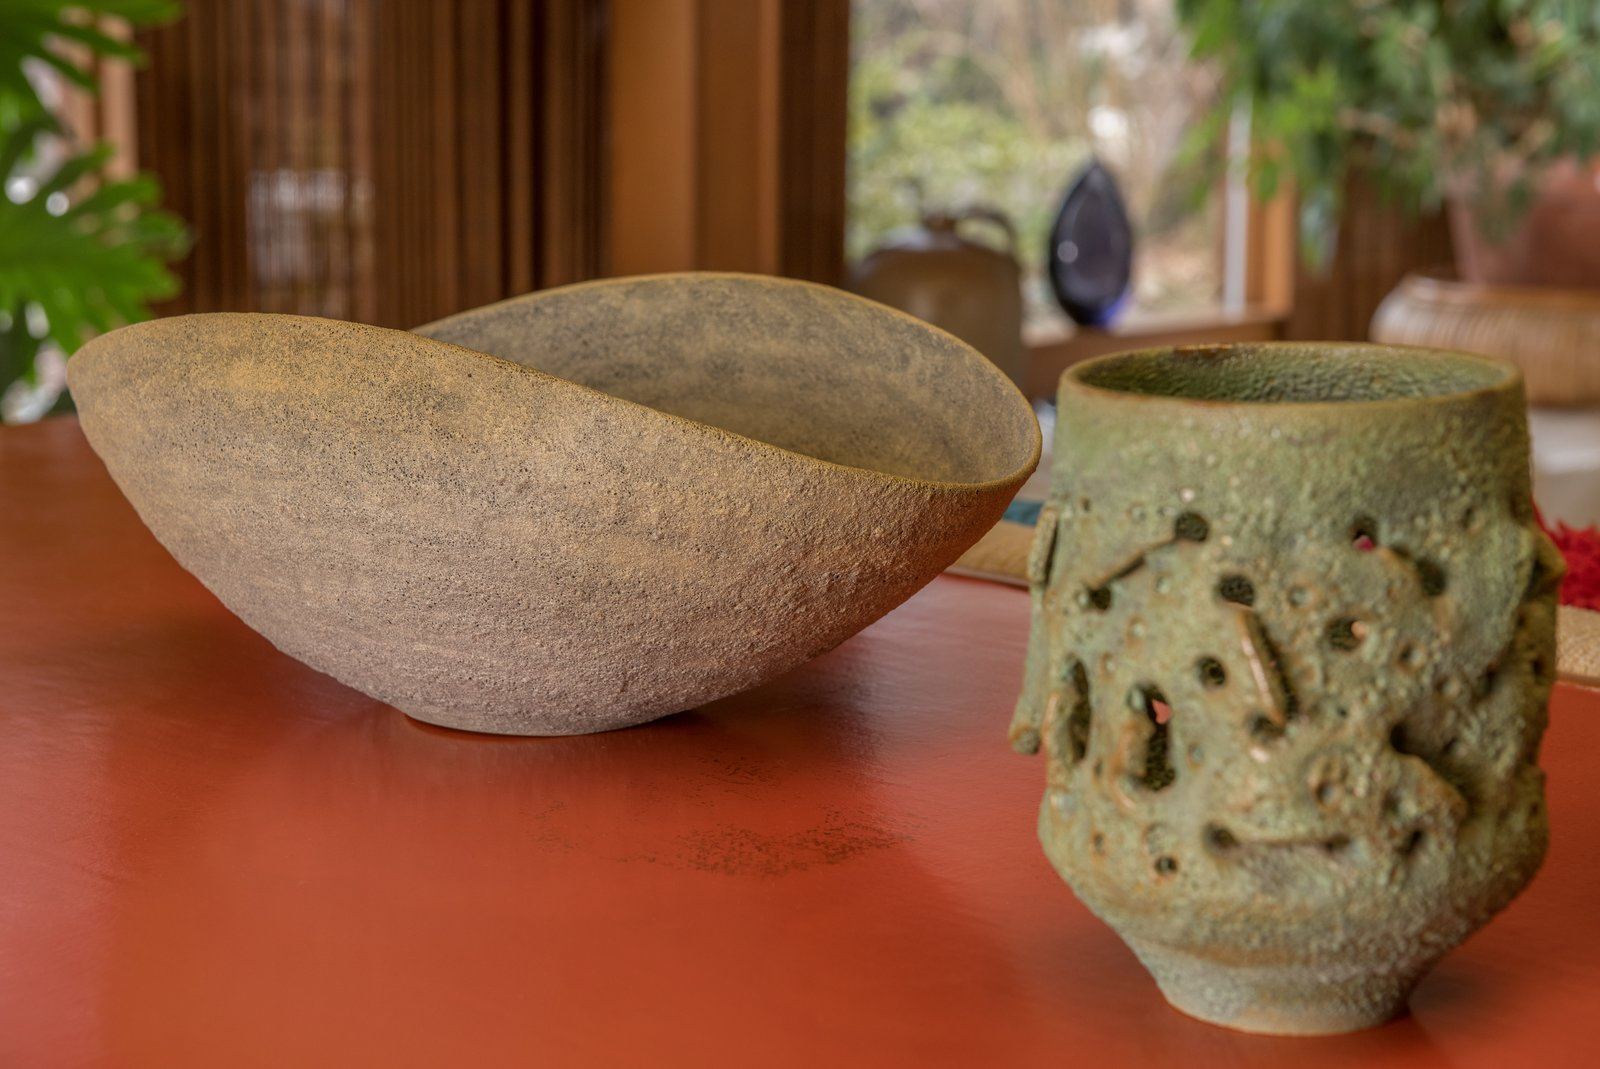 Living Room TK pieces of pottery by the Natzlers can be found throughout the Dow residence.  Photo 12 of 15 in A Midcentury Time Capsule Captures an Architect's Love For Iconic Design